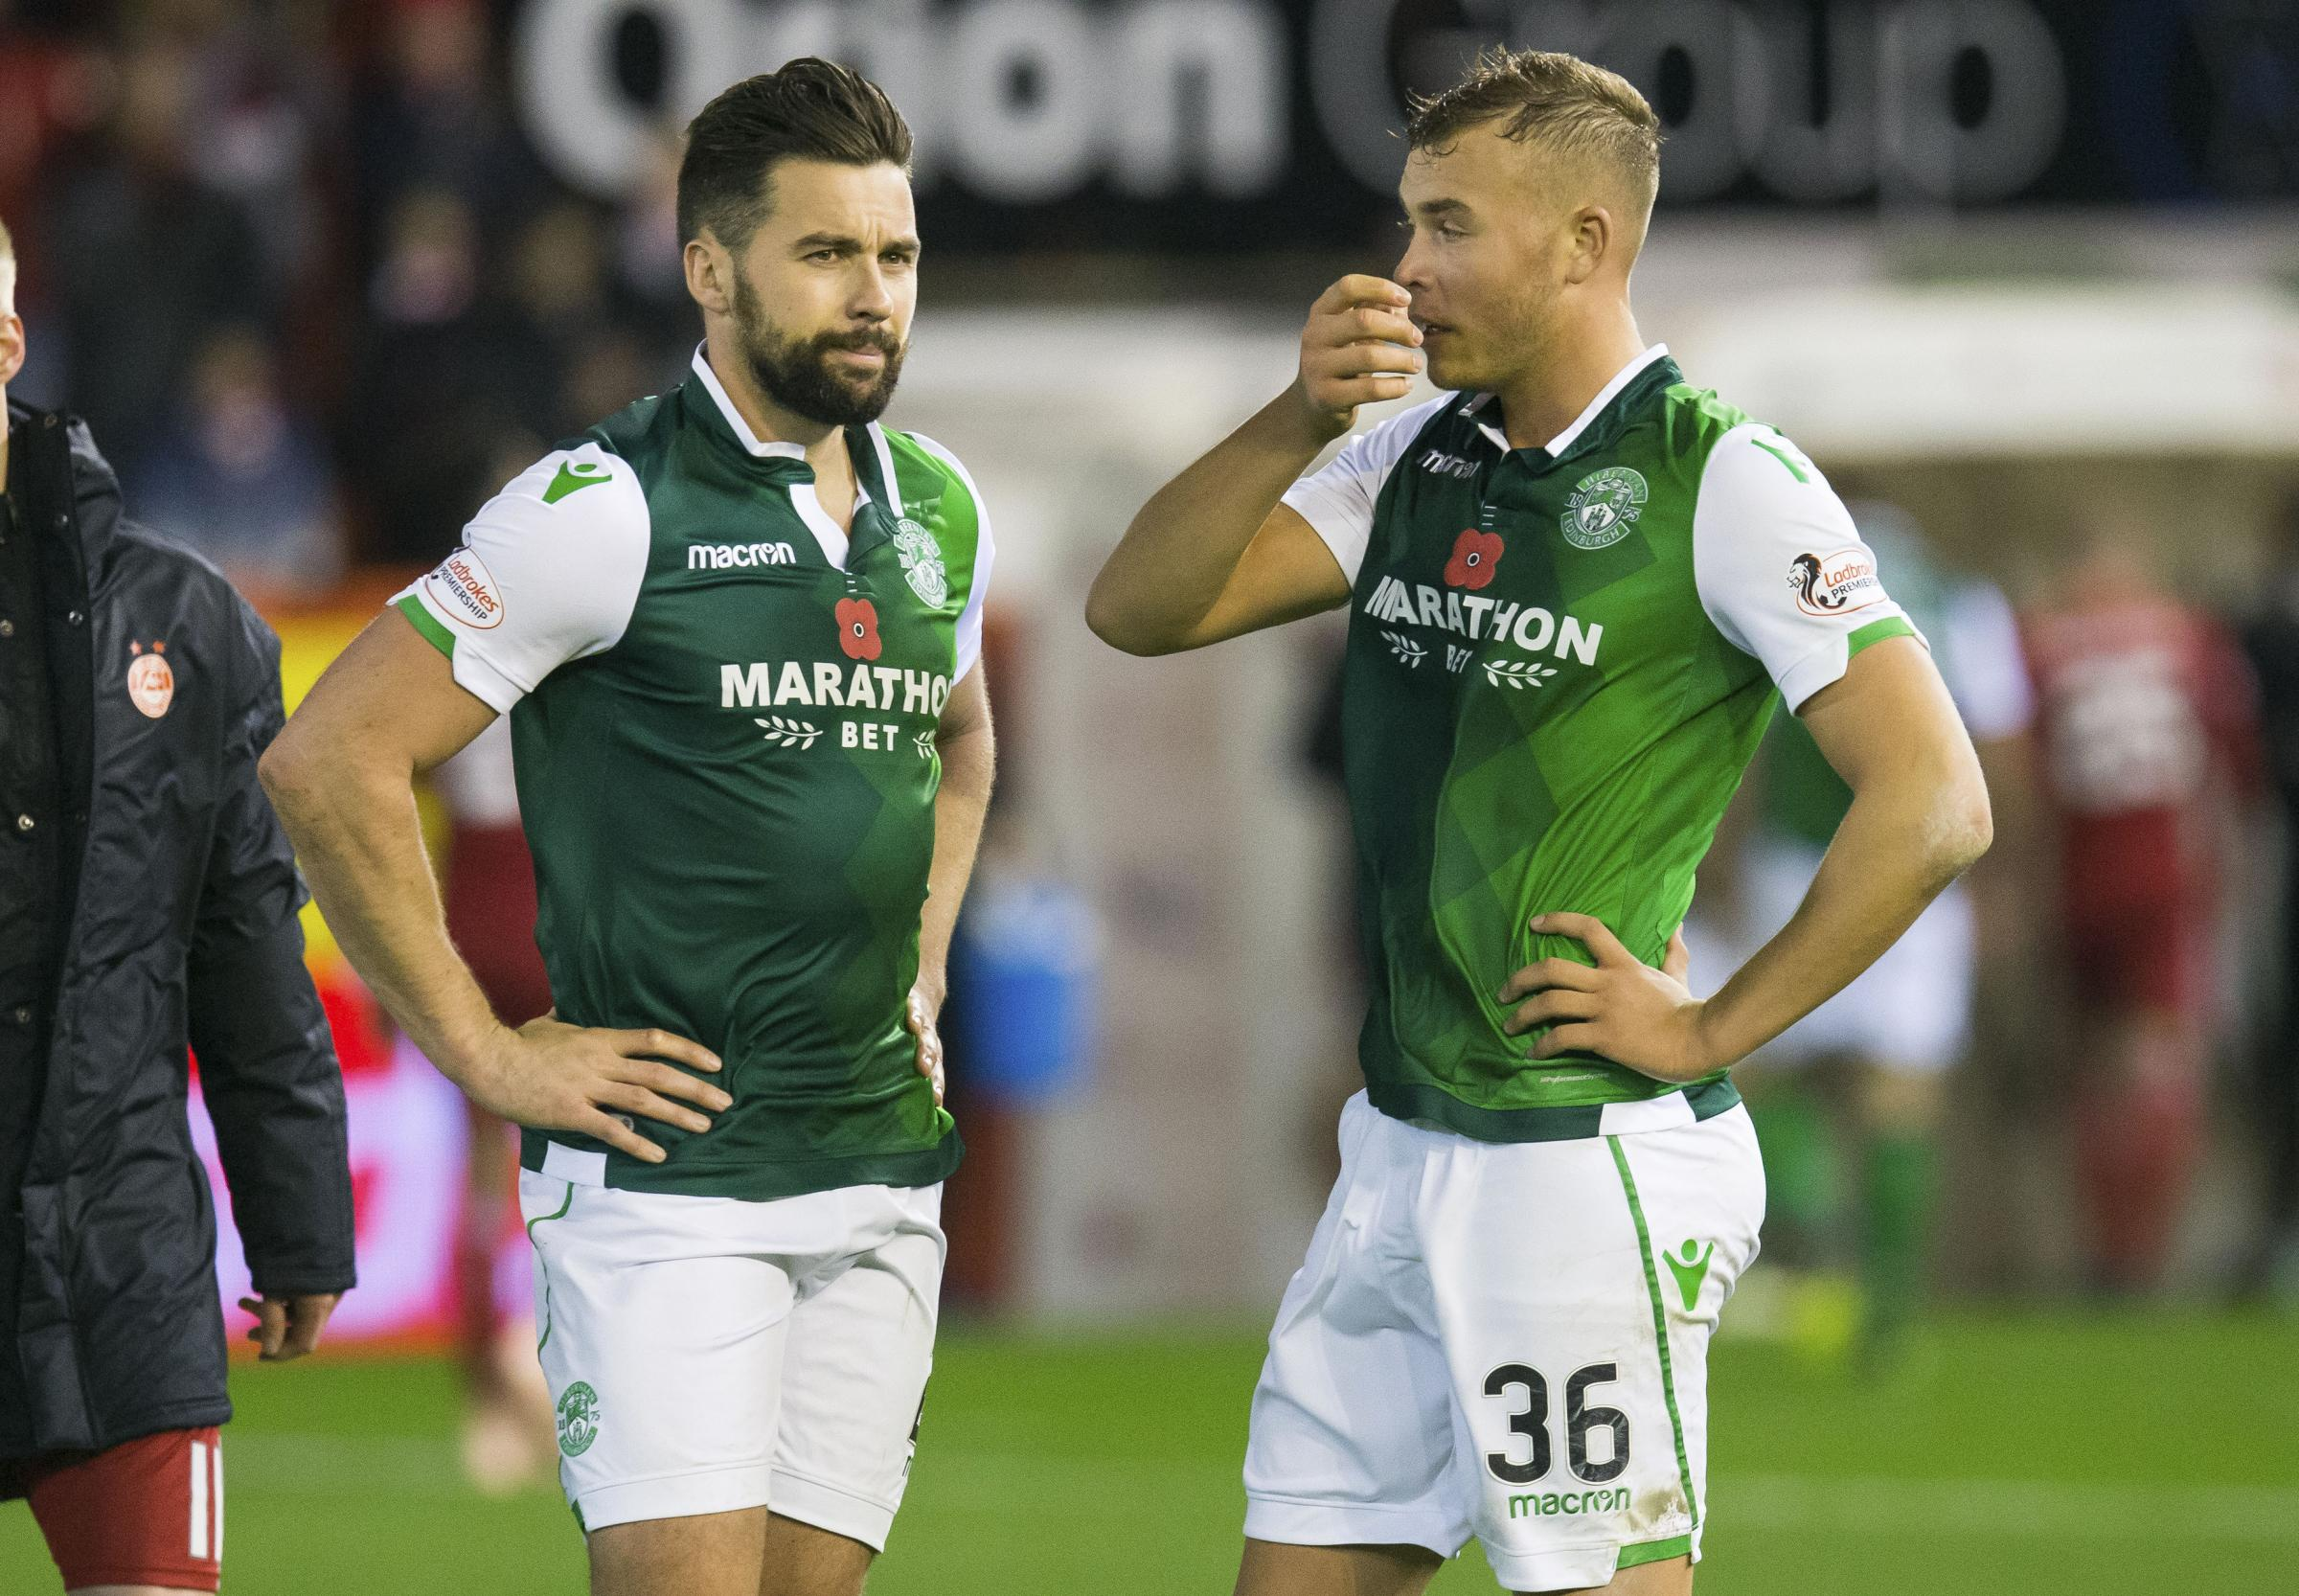 Hibernian's Ryan Porteous insists Neil Lennon hasn't 'lost the dressing room'Hibernian's Ryan Porteous insists Neil Lennon hasn't 'lost the dressing room'